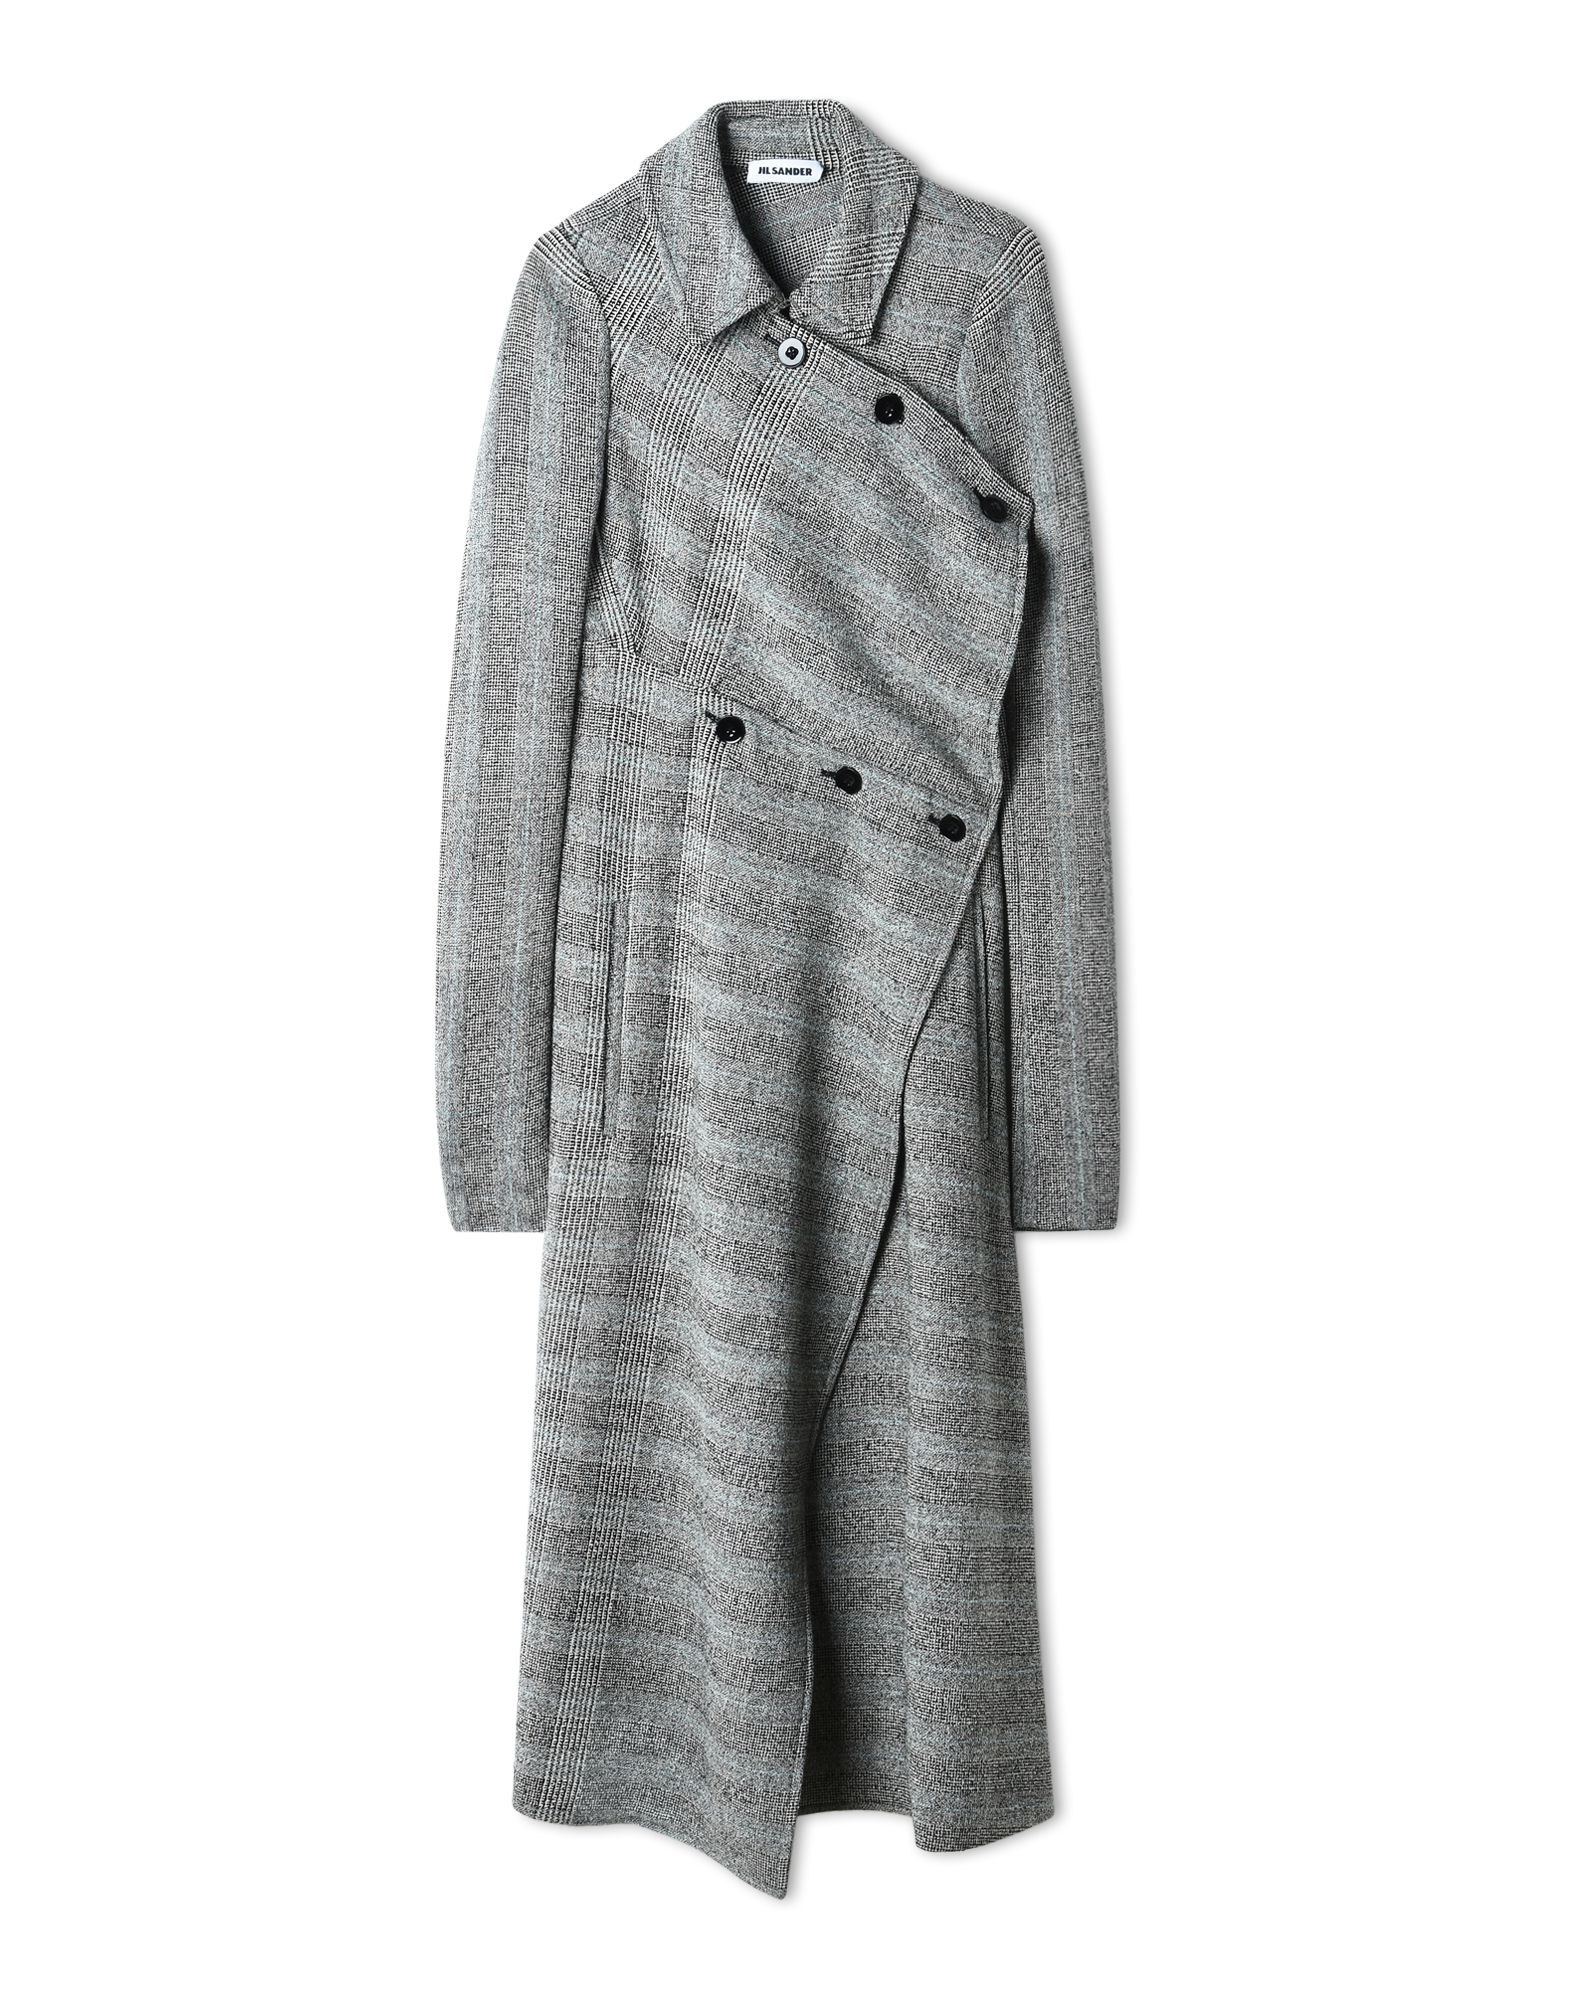 Asymmetric Prince Of Wales Checked Wool-Blend Coat in Gray from Jil Sander